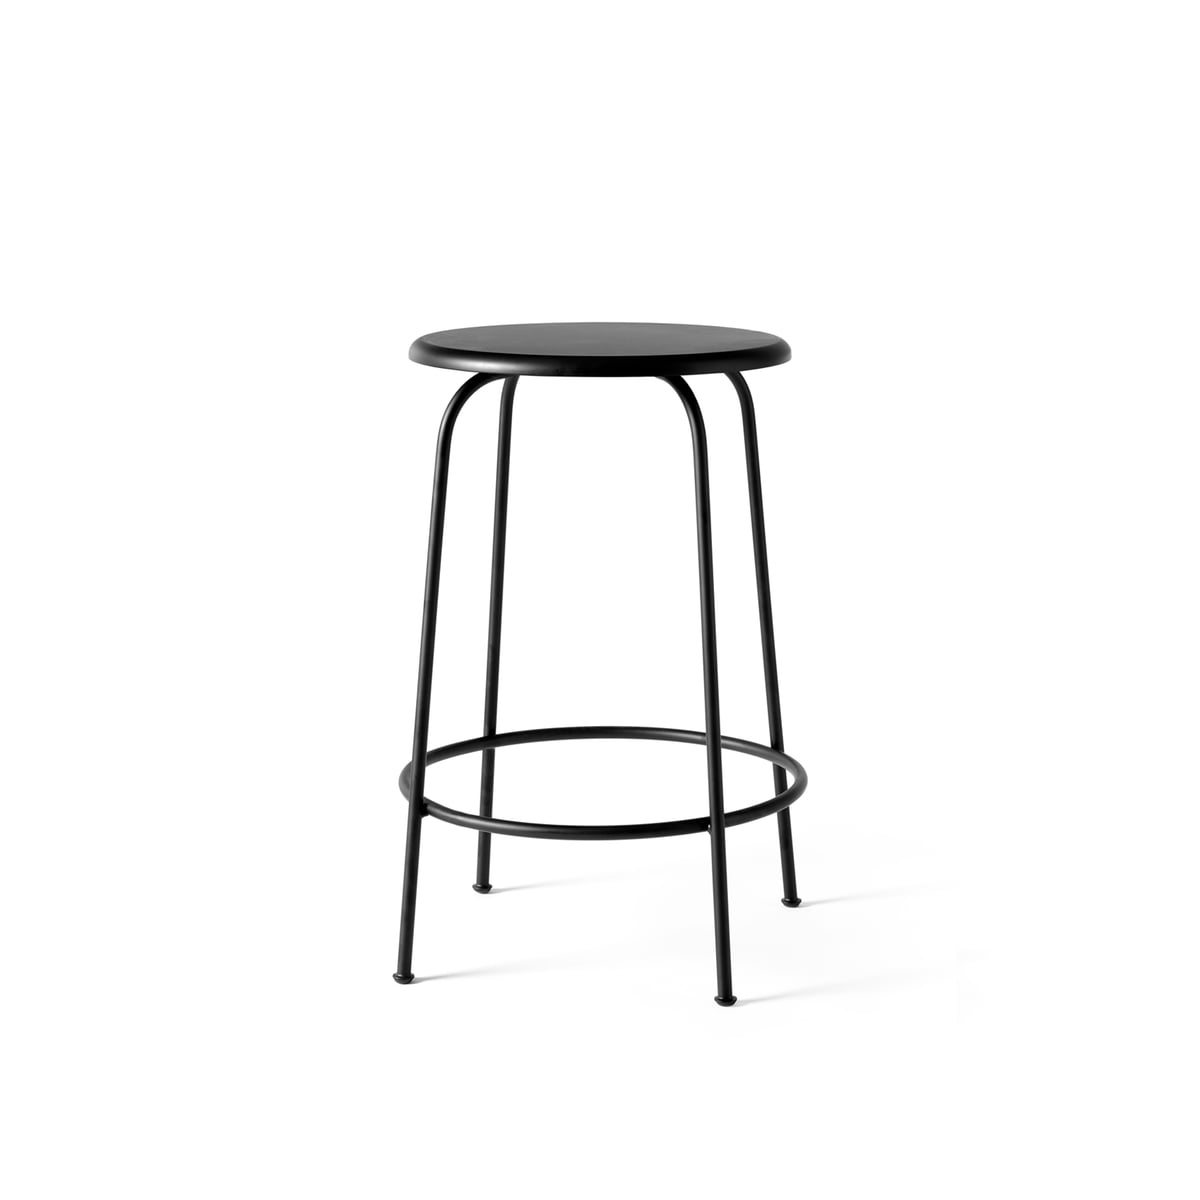 Fabulous Menu Afteroom Bar Stool Without Backrest Black H 65 Cm Creativecarmelina Interior Chair Design Creativecarmelinacom